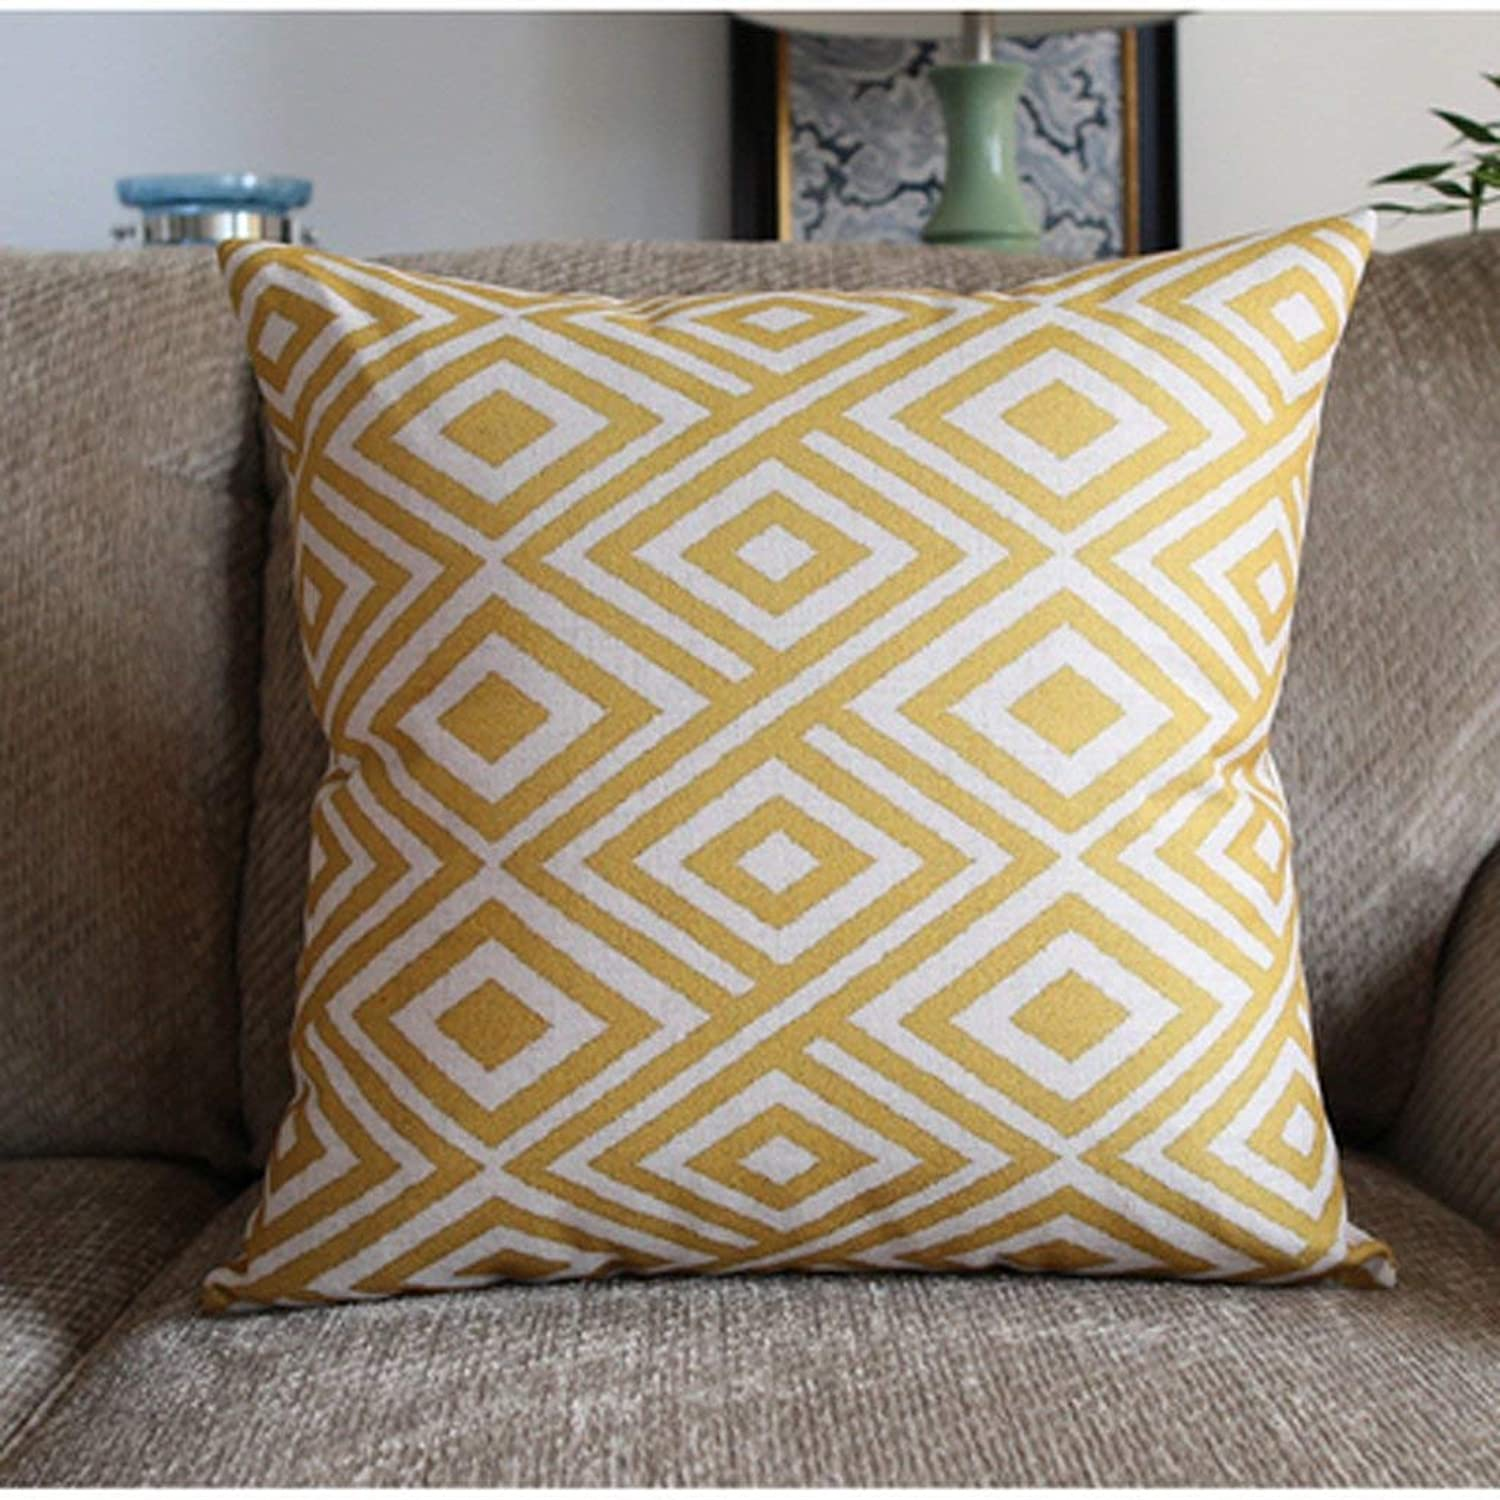 Seat Cushion Classical Geometric Nordic Sofa Pillow Decorated Home Linen Pillow Chair Pad (color   53cm-Without a Core)